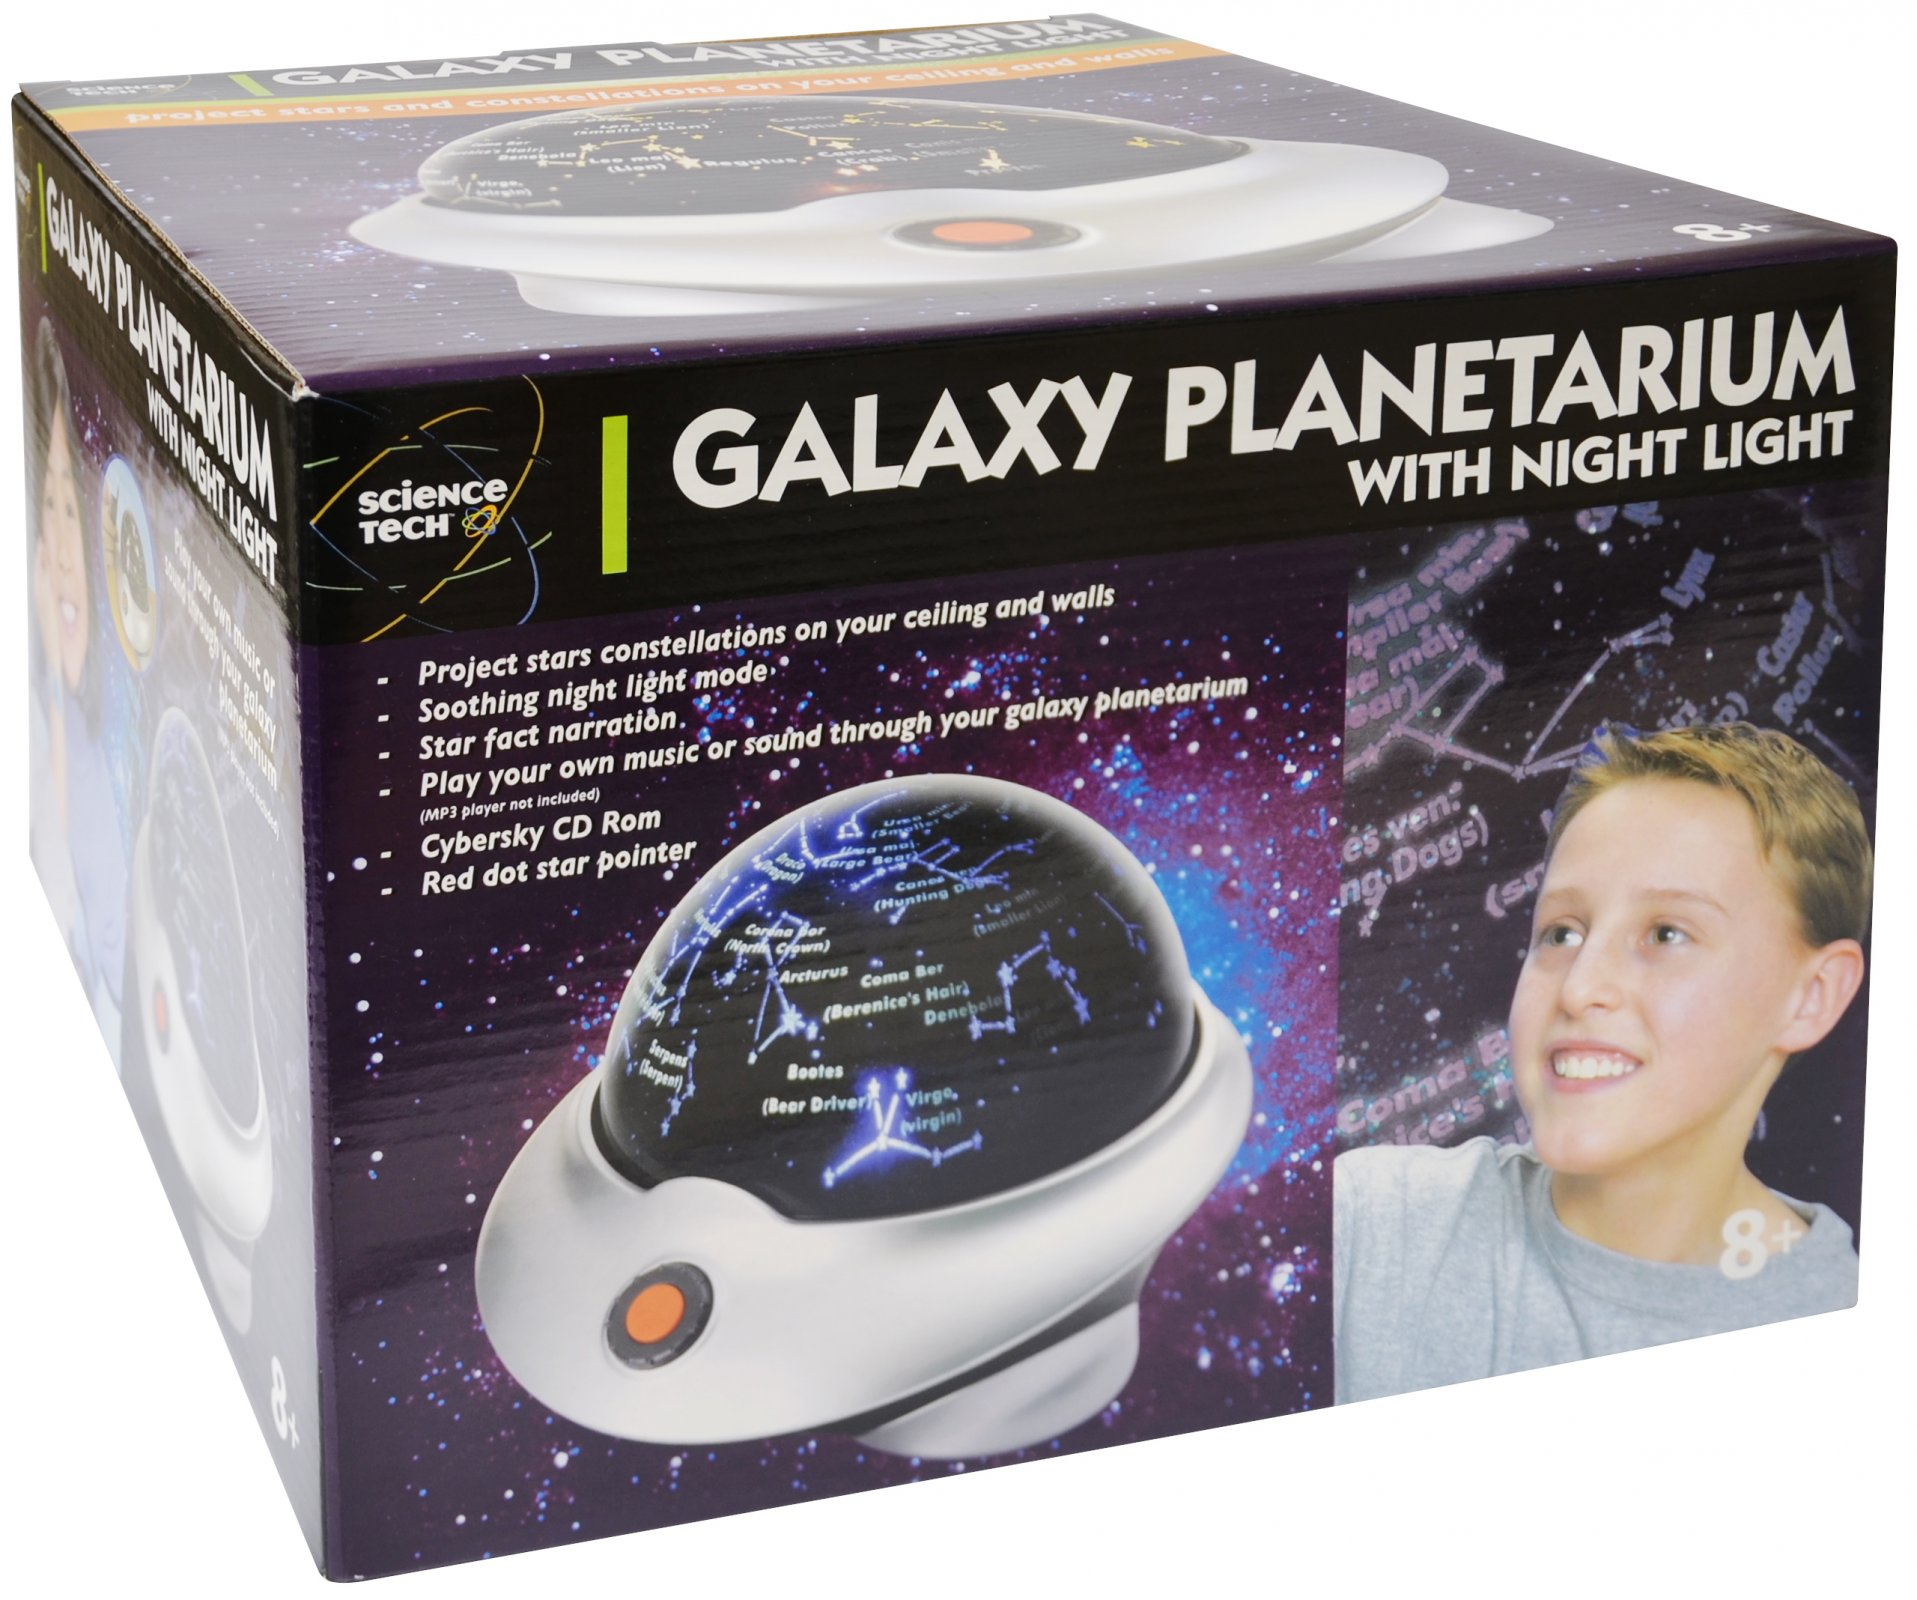 Galaxy Planetarium with Night Light